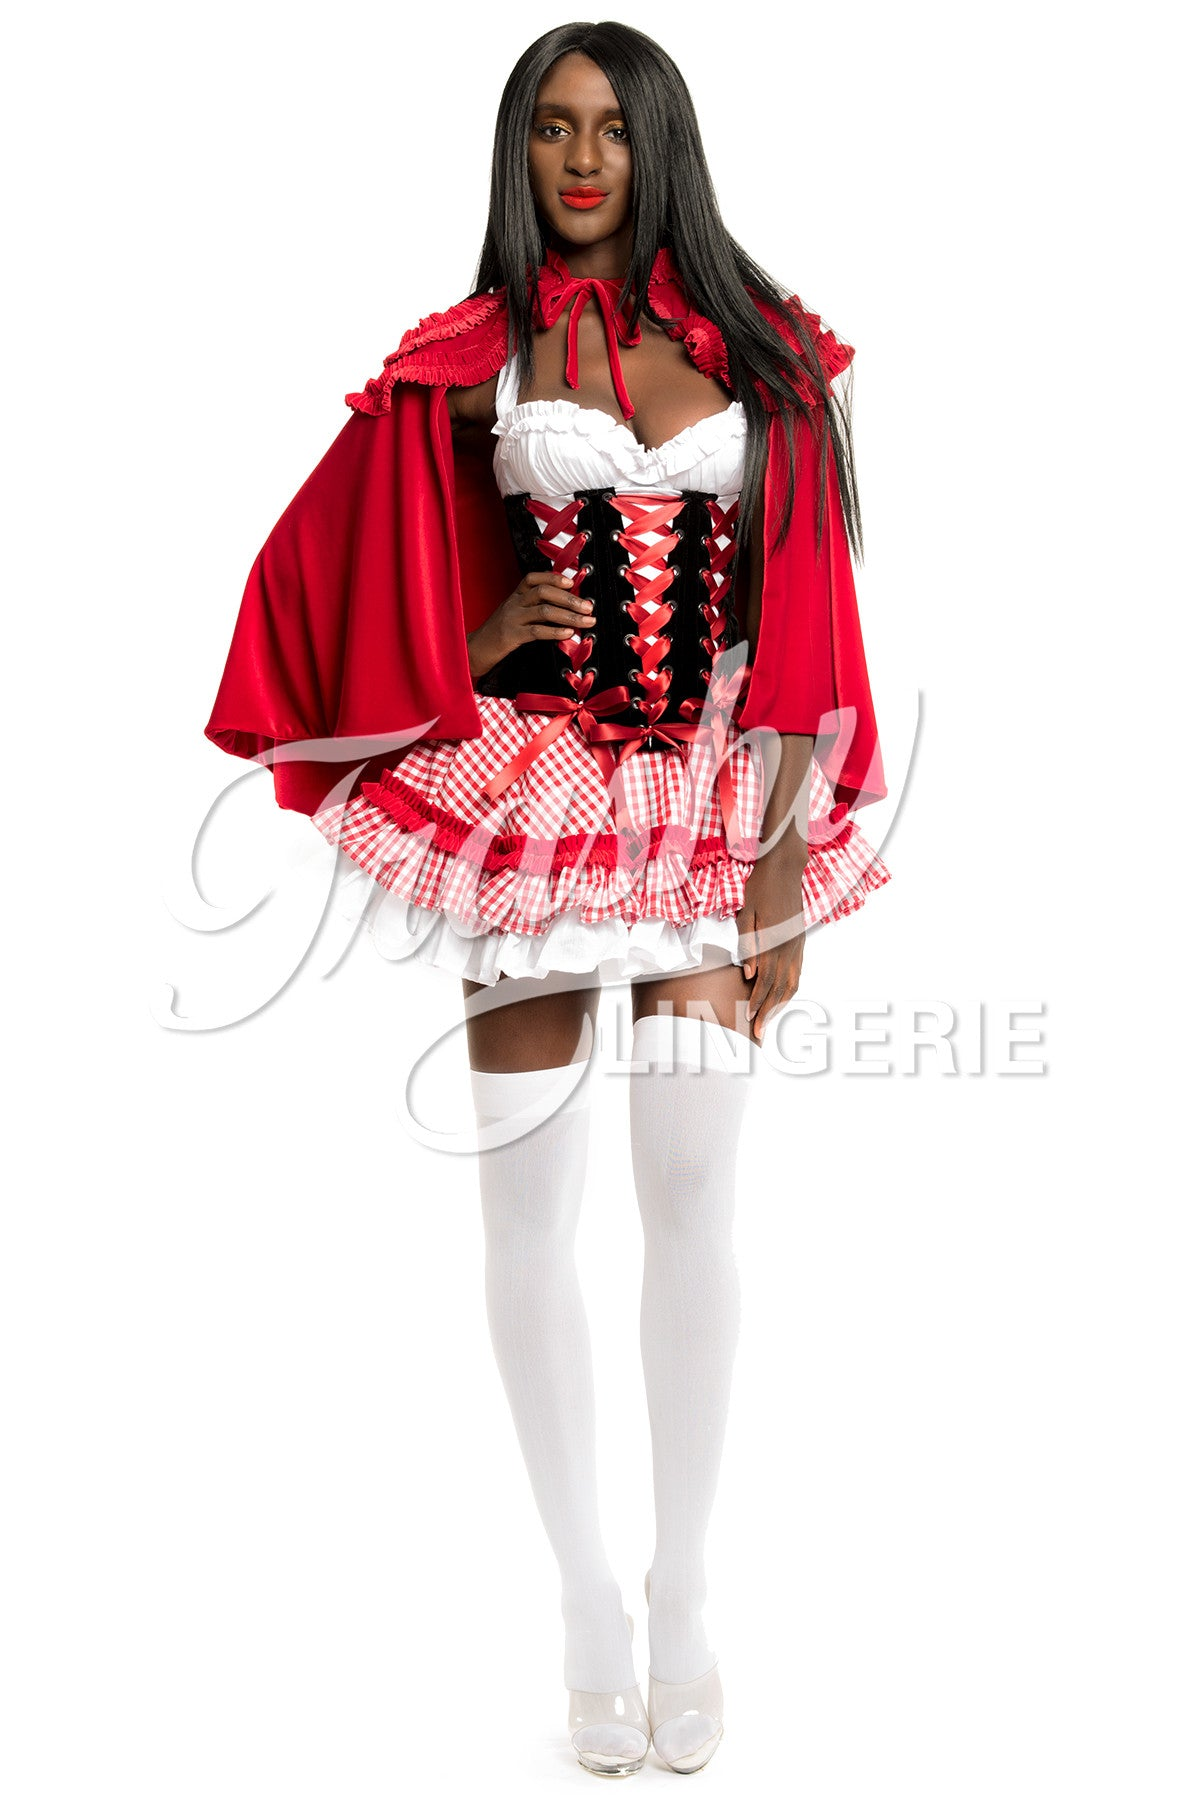 Red Riding Hood Waist Trainer